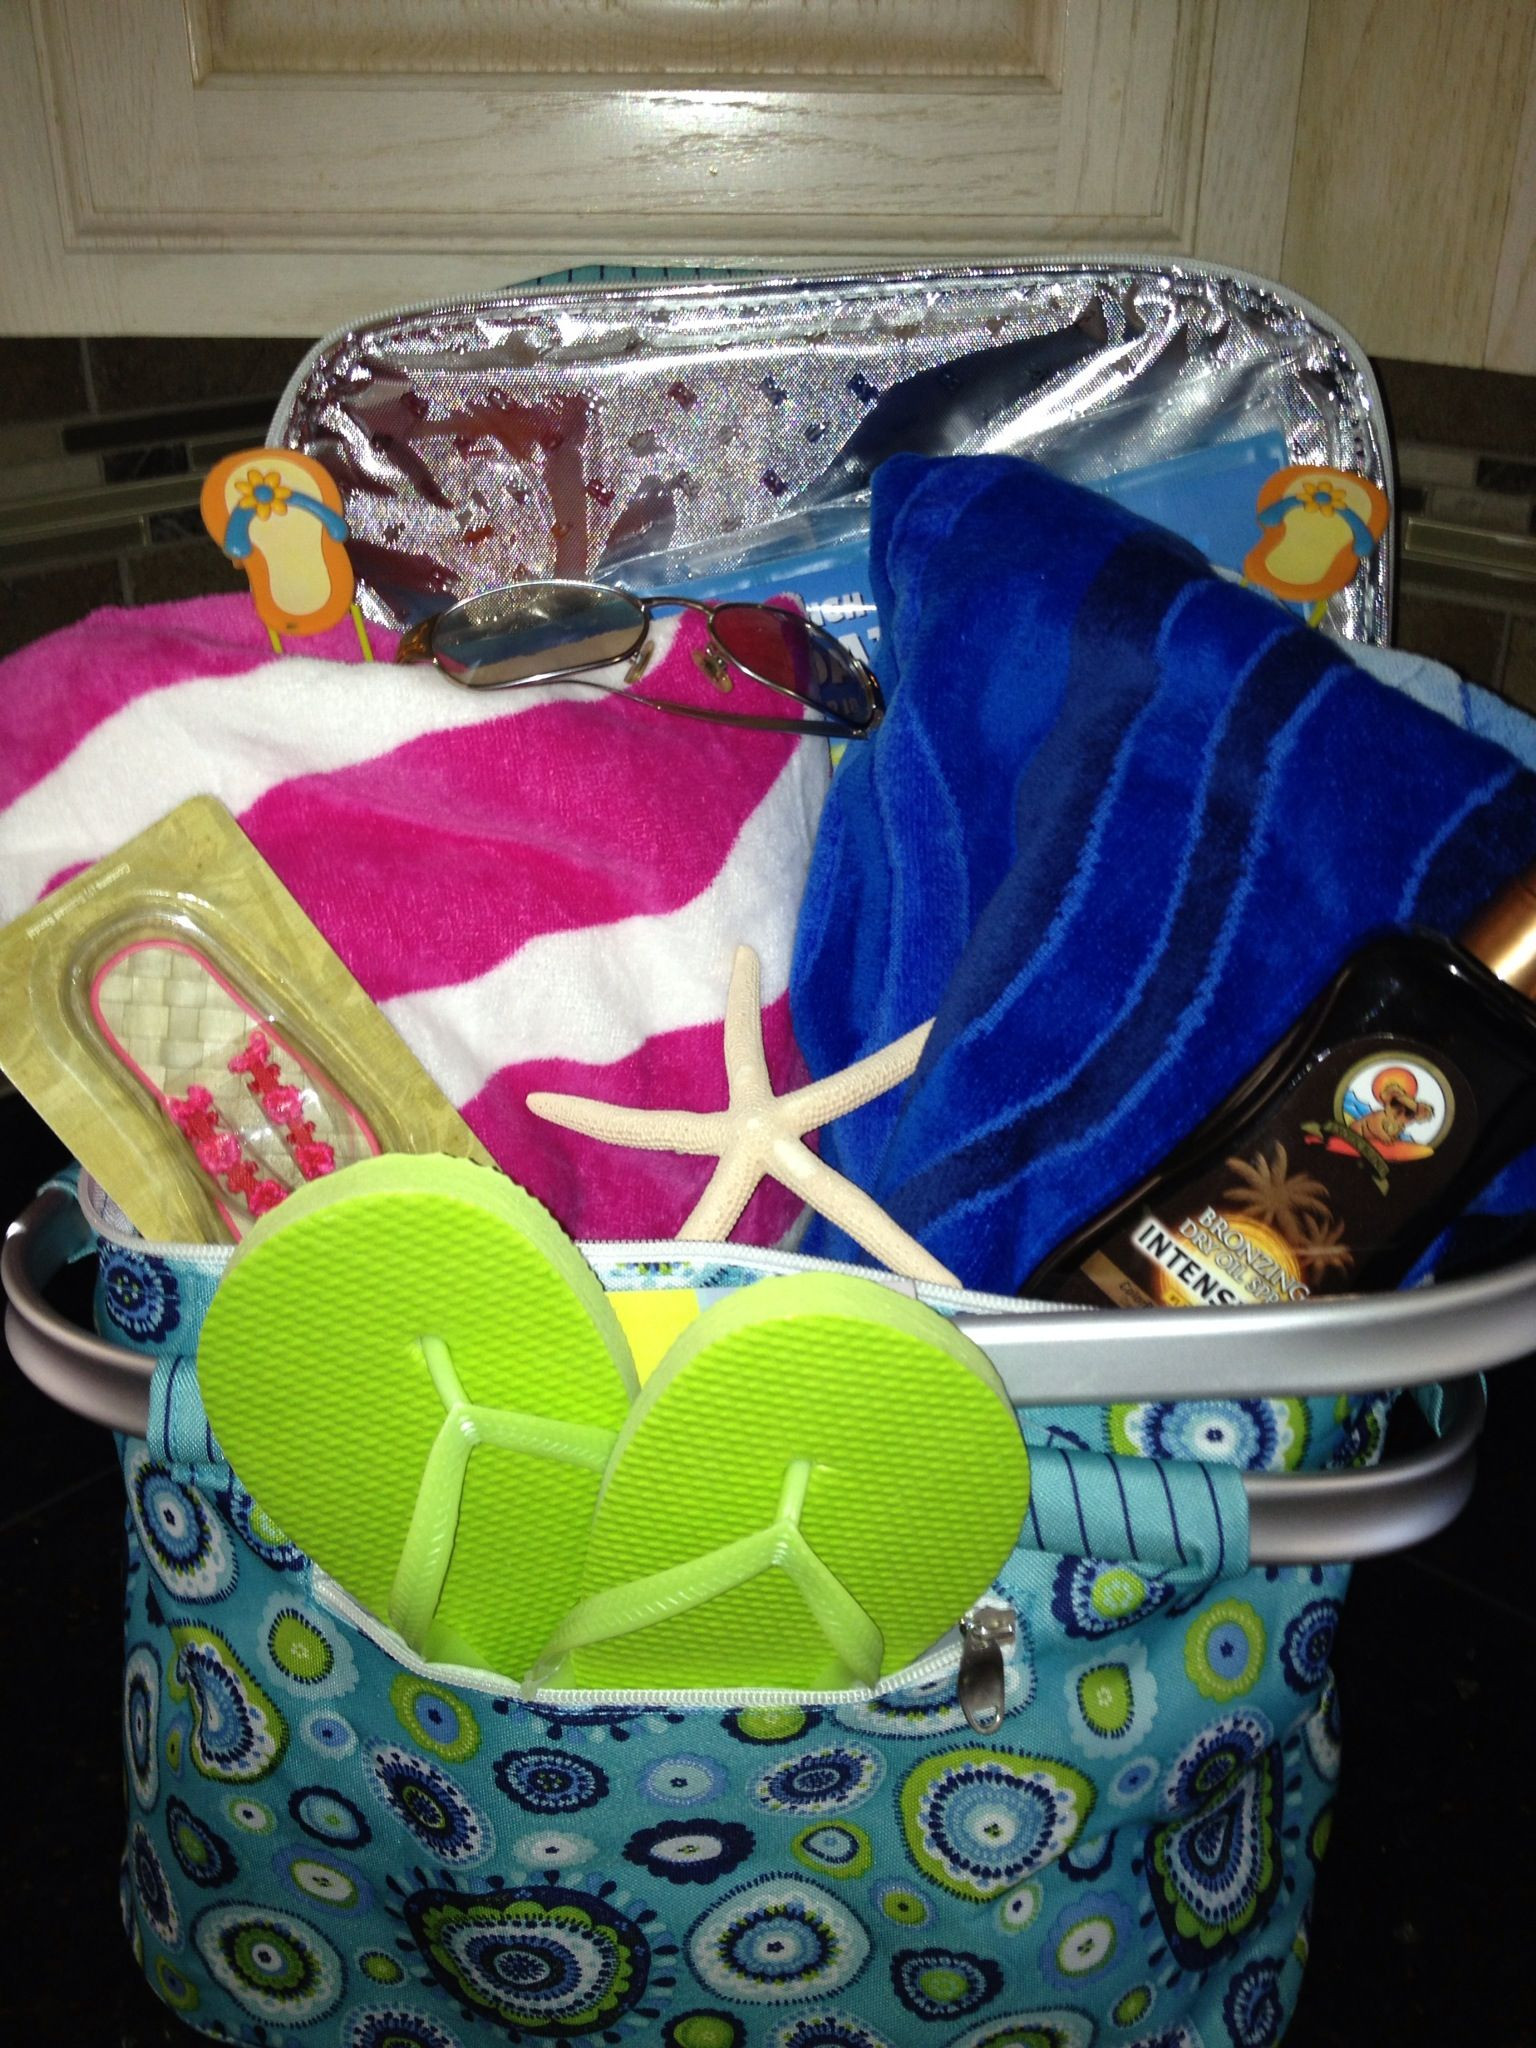 Best ideas about Pool Gift Ideas . Save or Pin Beach Pool Gift Basket Gift Baskets Pinterest Now.